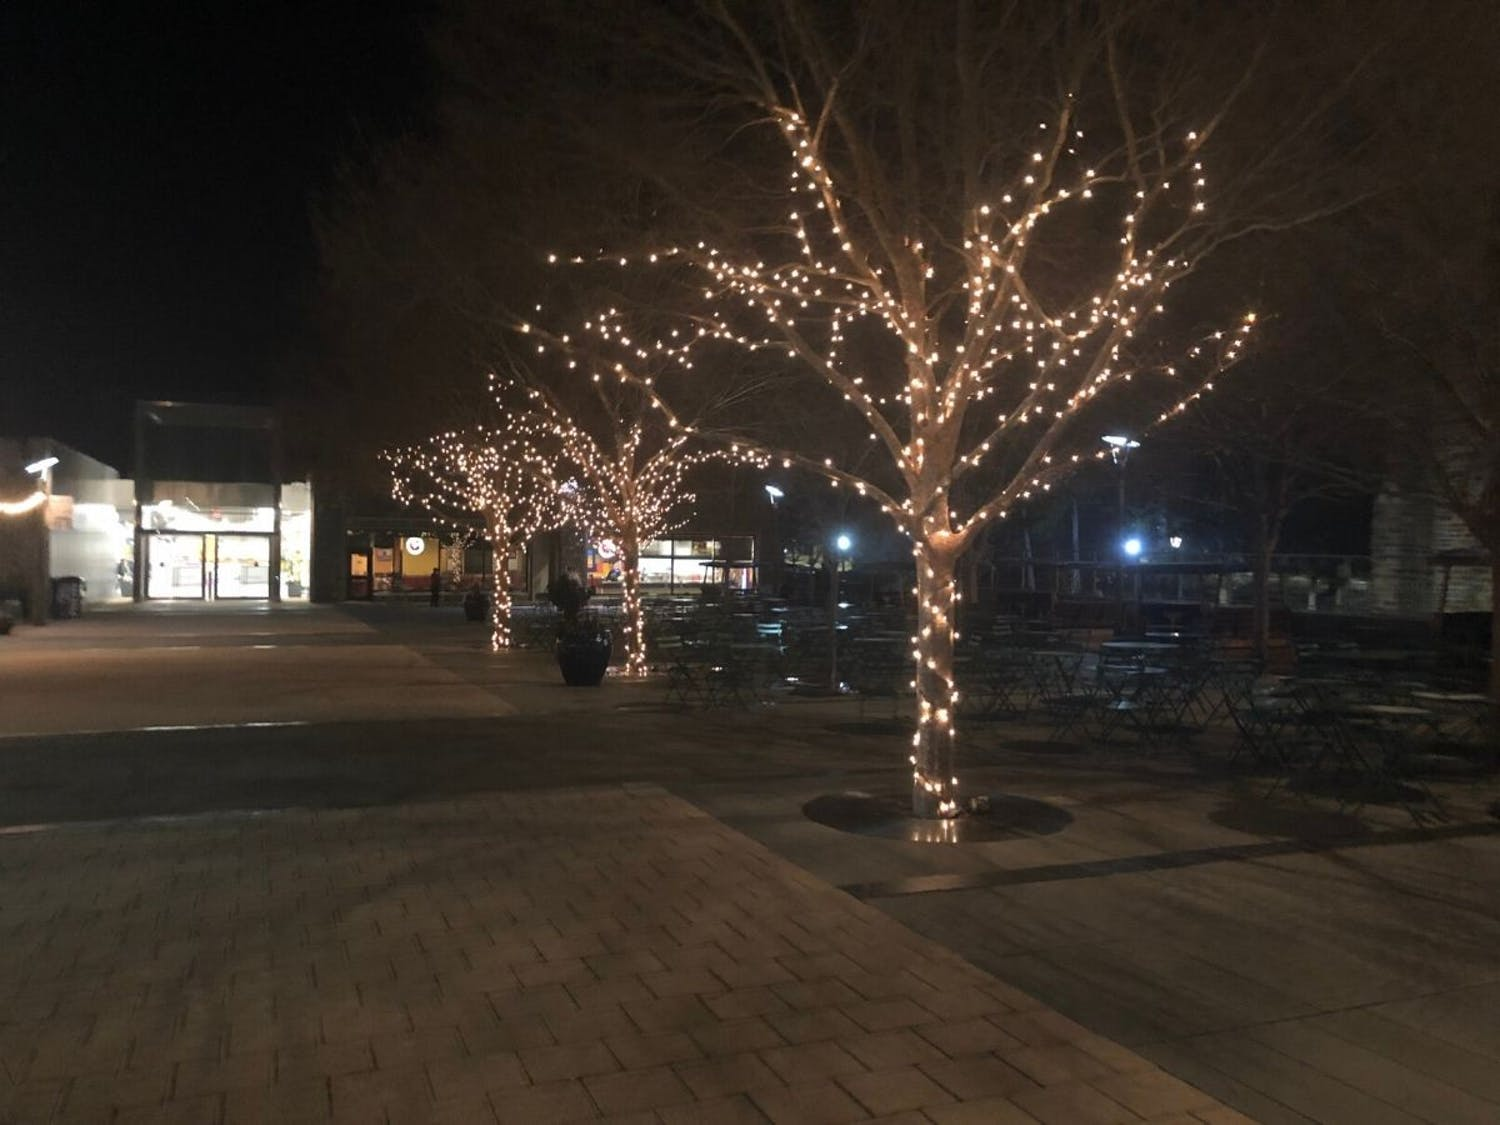 The string lights brighten up the dark BC plaza.